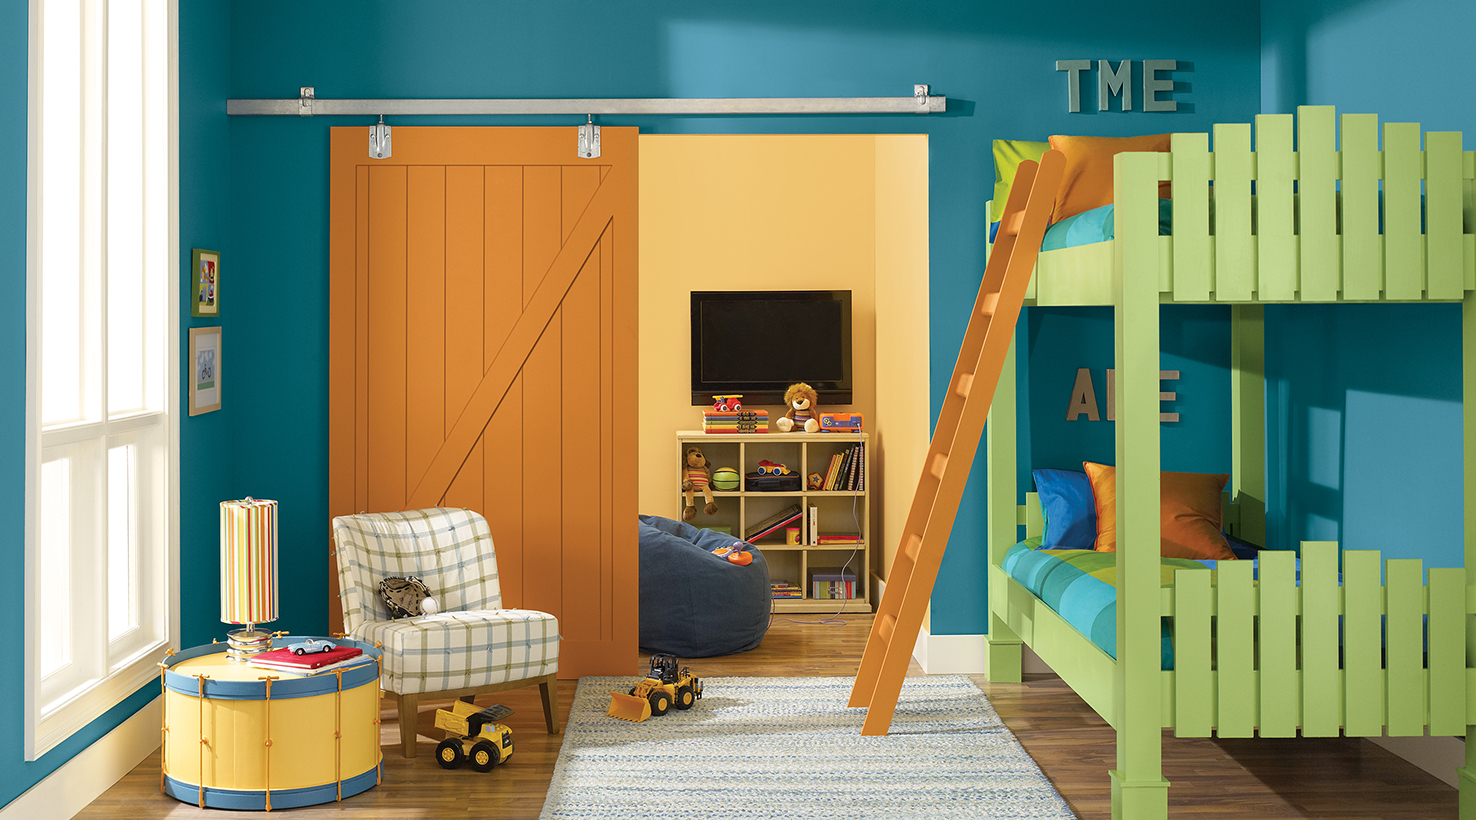 Amelia S Room Toddler Bedroom: Baby & Toddler Room Color Inspiration By Sherwin-Williams